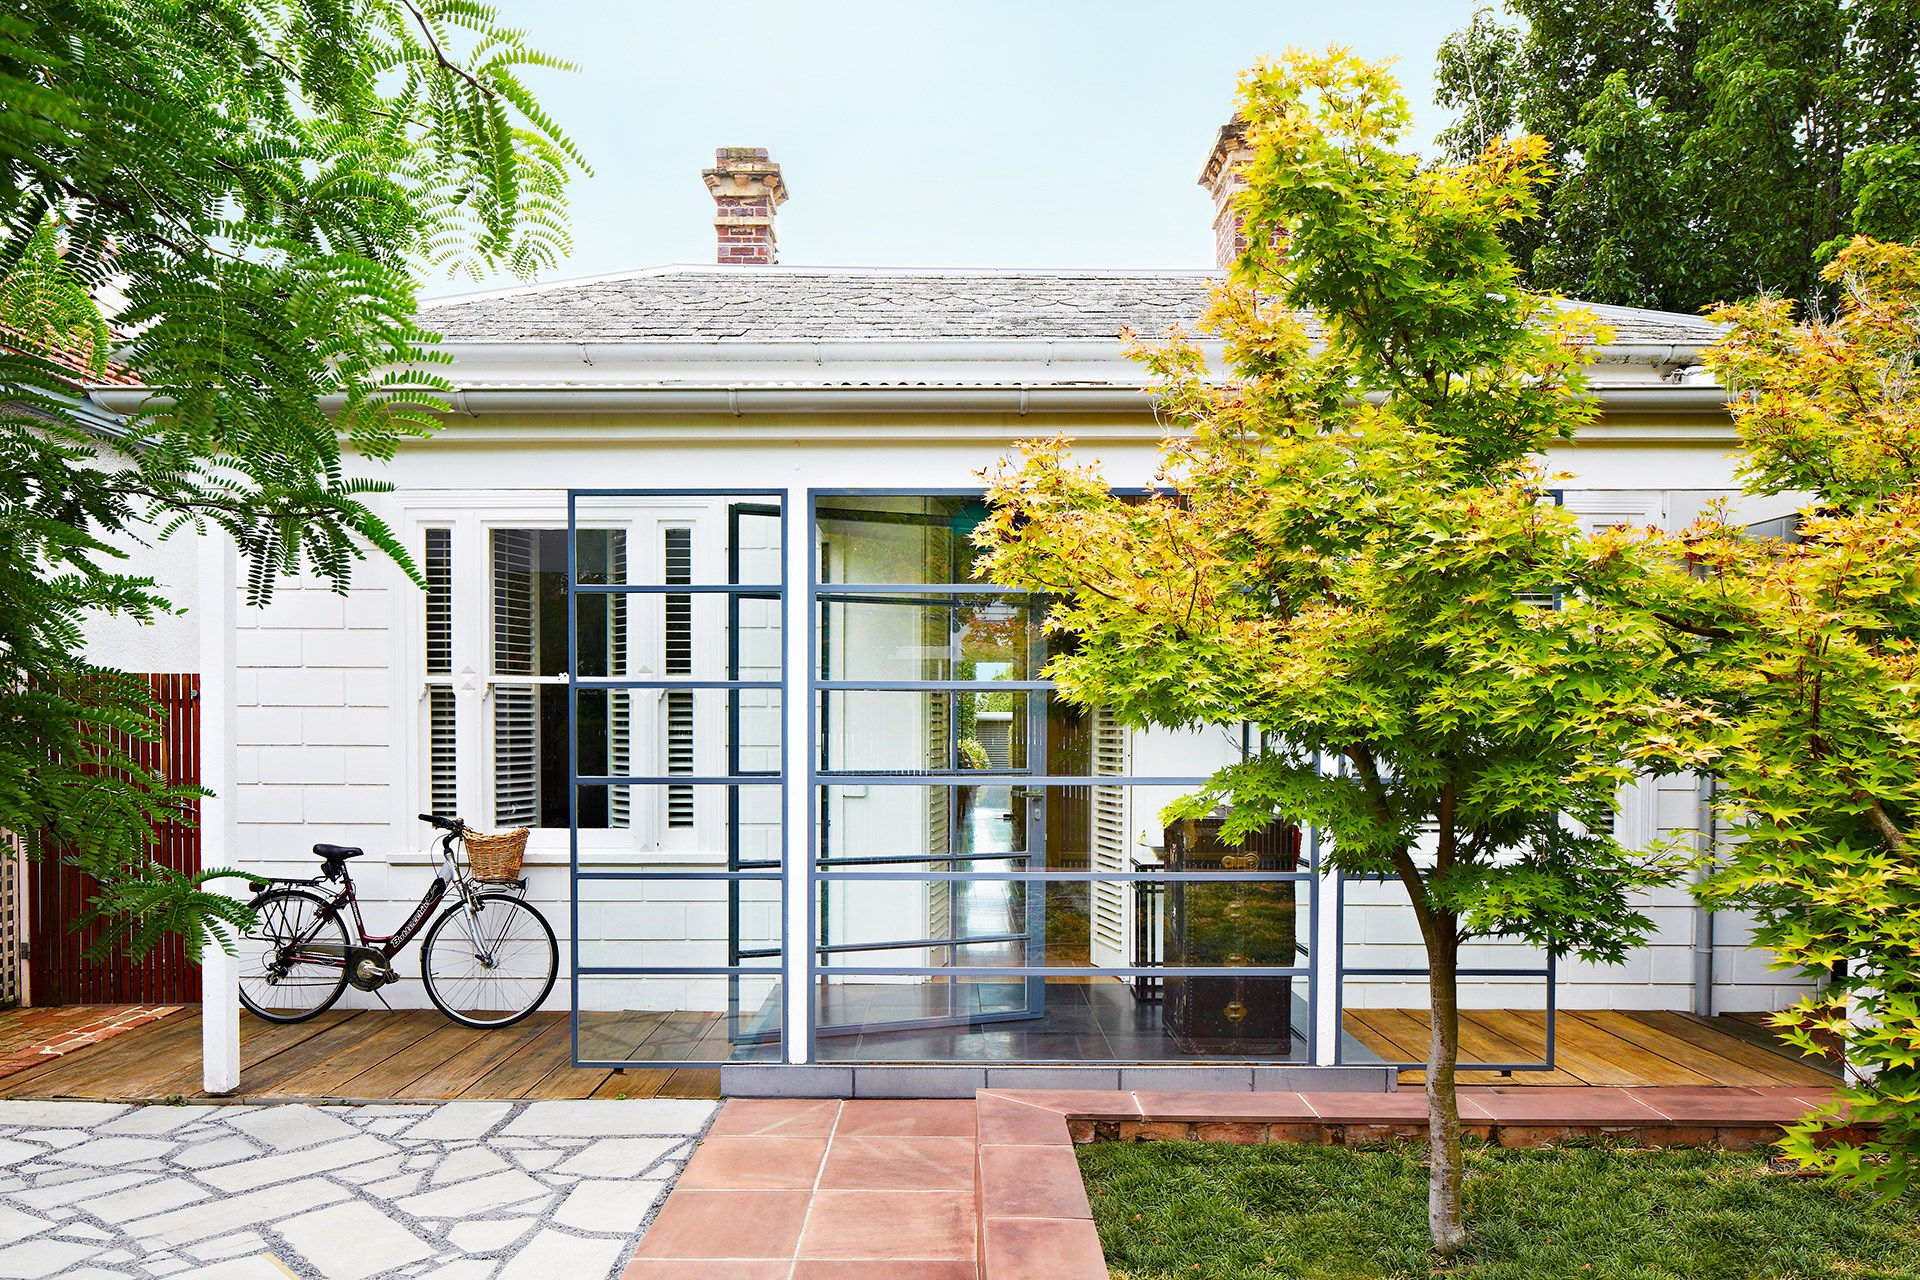 A glass-walled vestibule was added to this Victorian-era facade to provide views to the front garden. Take a tour of this [dynamic family home](http://www.homestolove.com.au/gallery-jon-and-vanessas-dynamic-family-home-plus-office-2275). Photo: Armelle Habib / *Australian House & Garden*